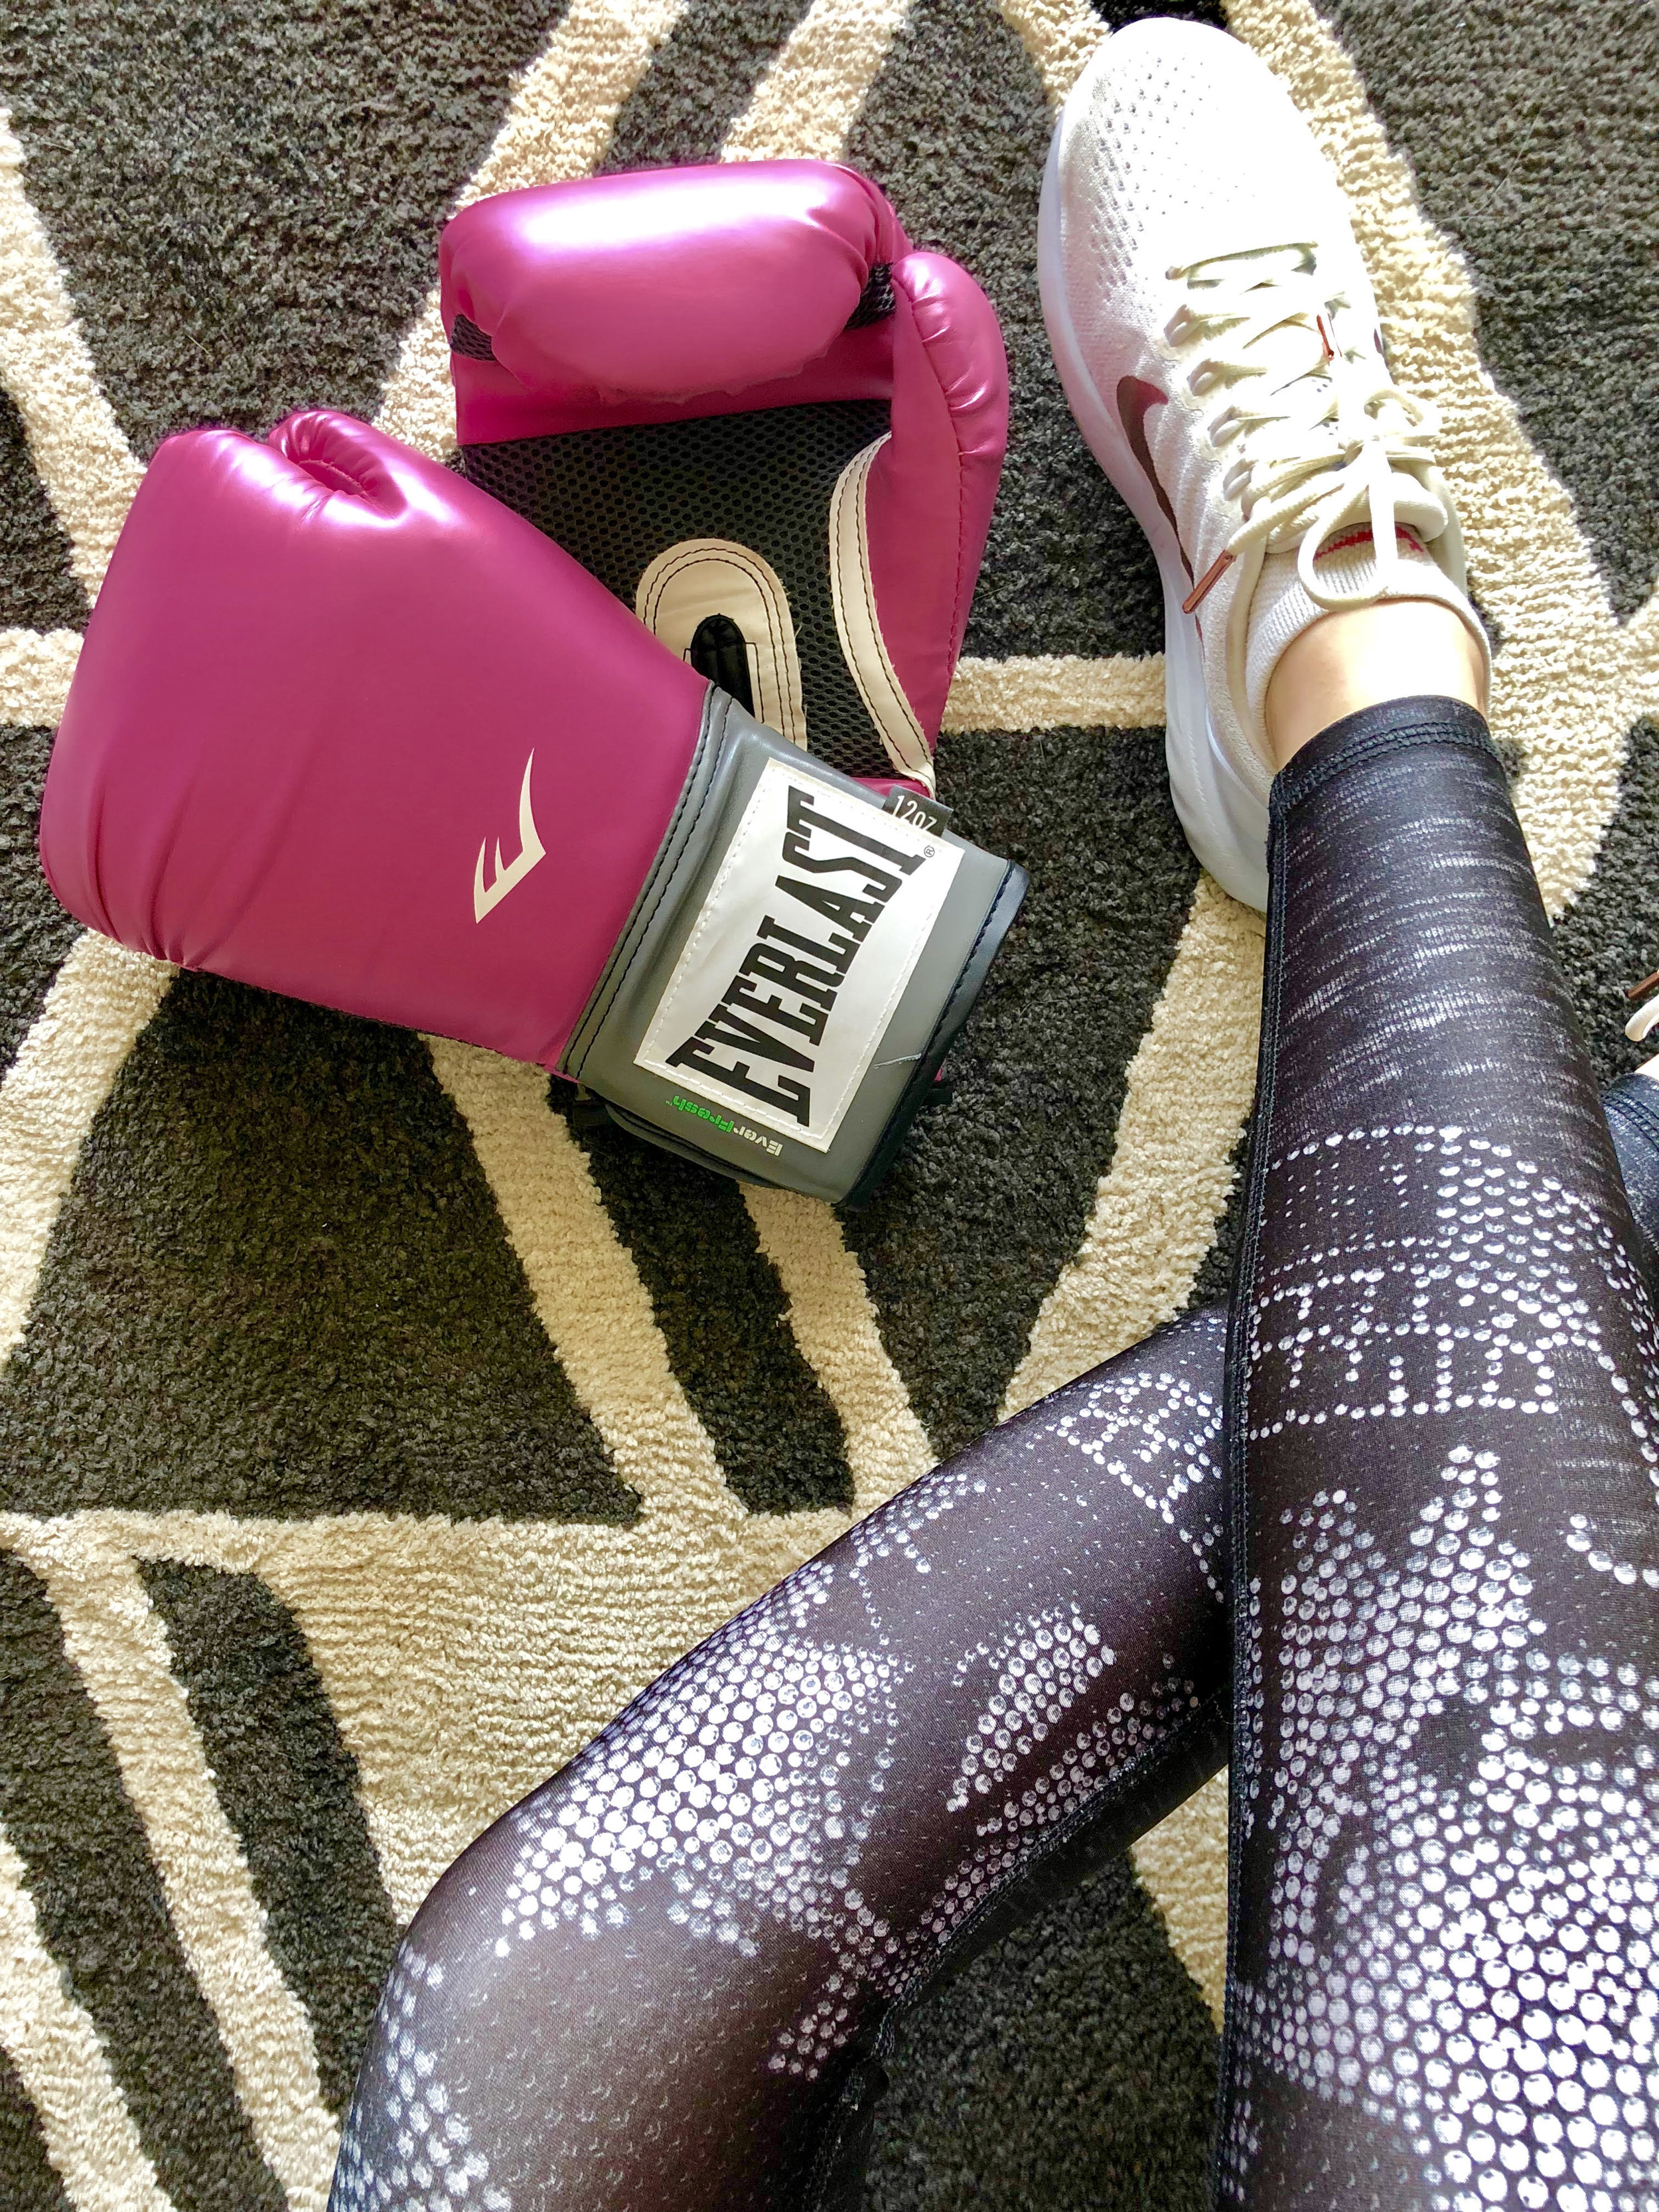 Everlast - Before my diagnosis, I was a huge boxing fan (and I can't wait to get back in the ring)! I love my Everlast Pro Style Training Gloves. I, of course, have them in pink (pictured). I also occasionally wear the pink Hand Wraps but, fair warning, they're a little thin for my taste.The best part? Everlast is a proud supporter of BCRF, donating $75,000 to the organization, regardless of sales. You can shop pink all year long and learn more about Everlast's support here. P.S. How cute are my leggings? They're Terez, one of my favorites!